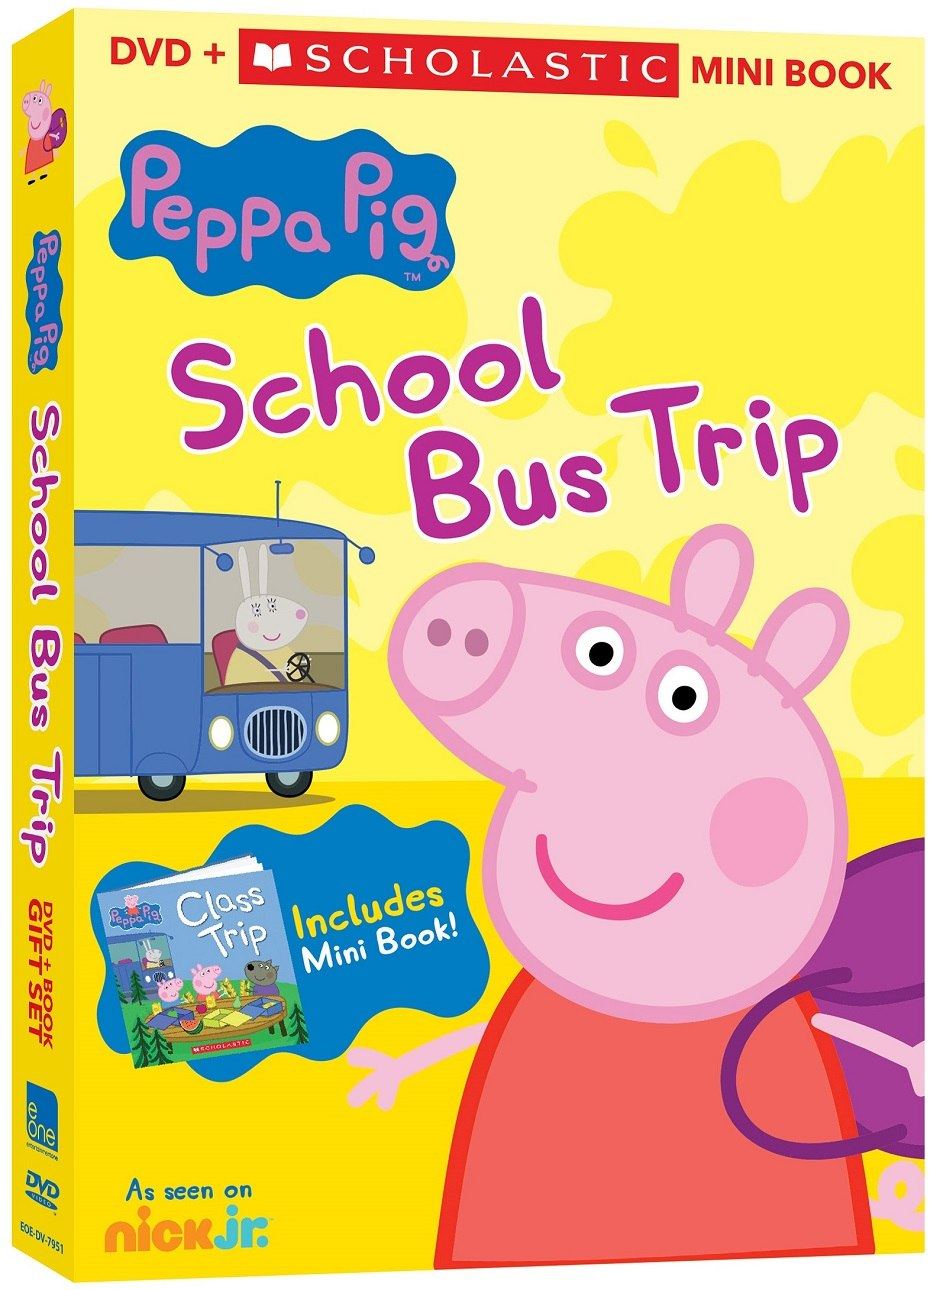 'Peppa Pig' Heads Back to School with New DVD + Book Set   Animation World  Network